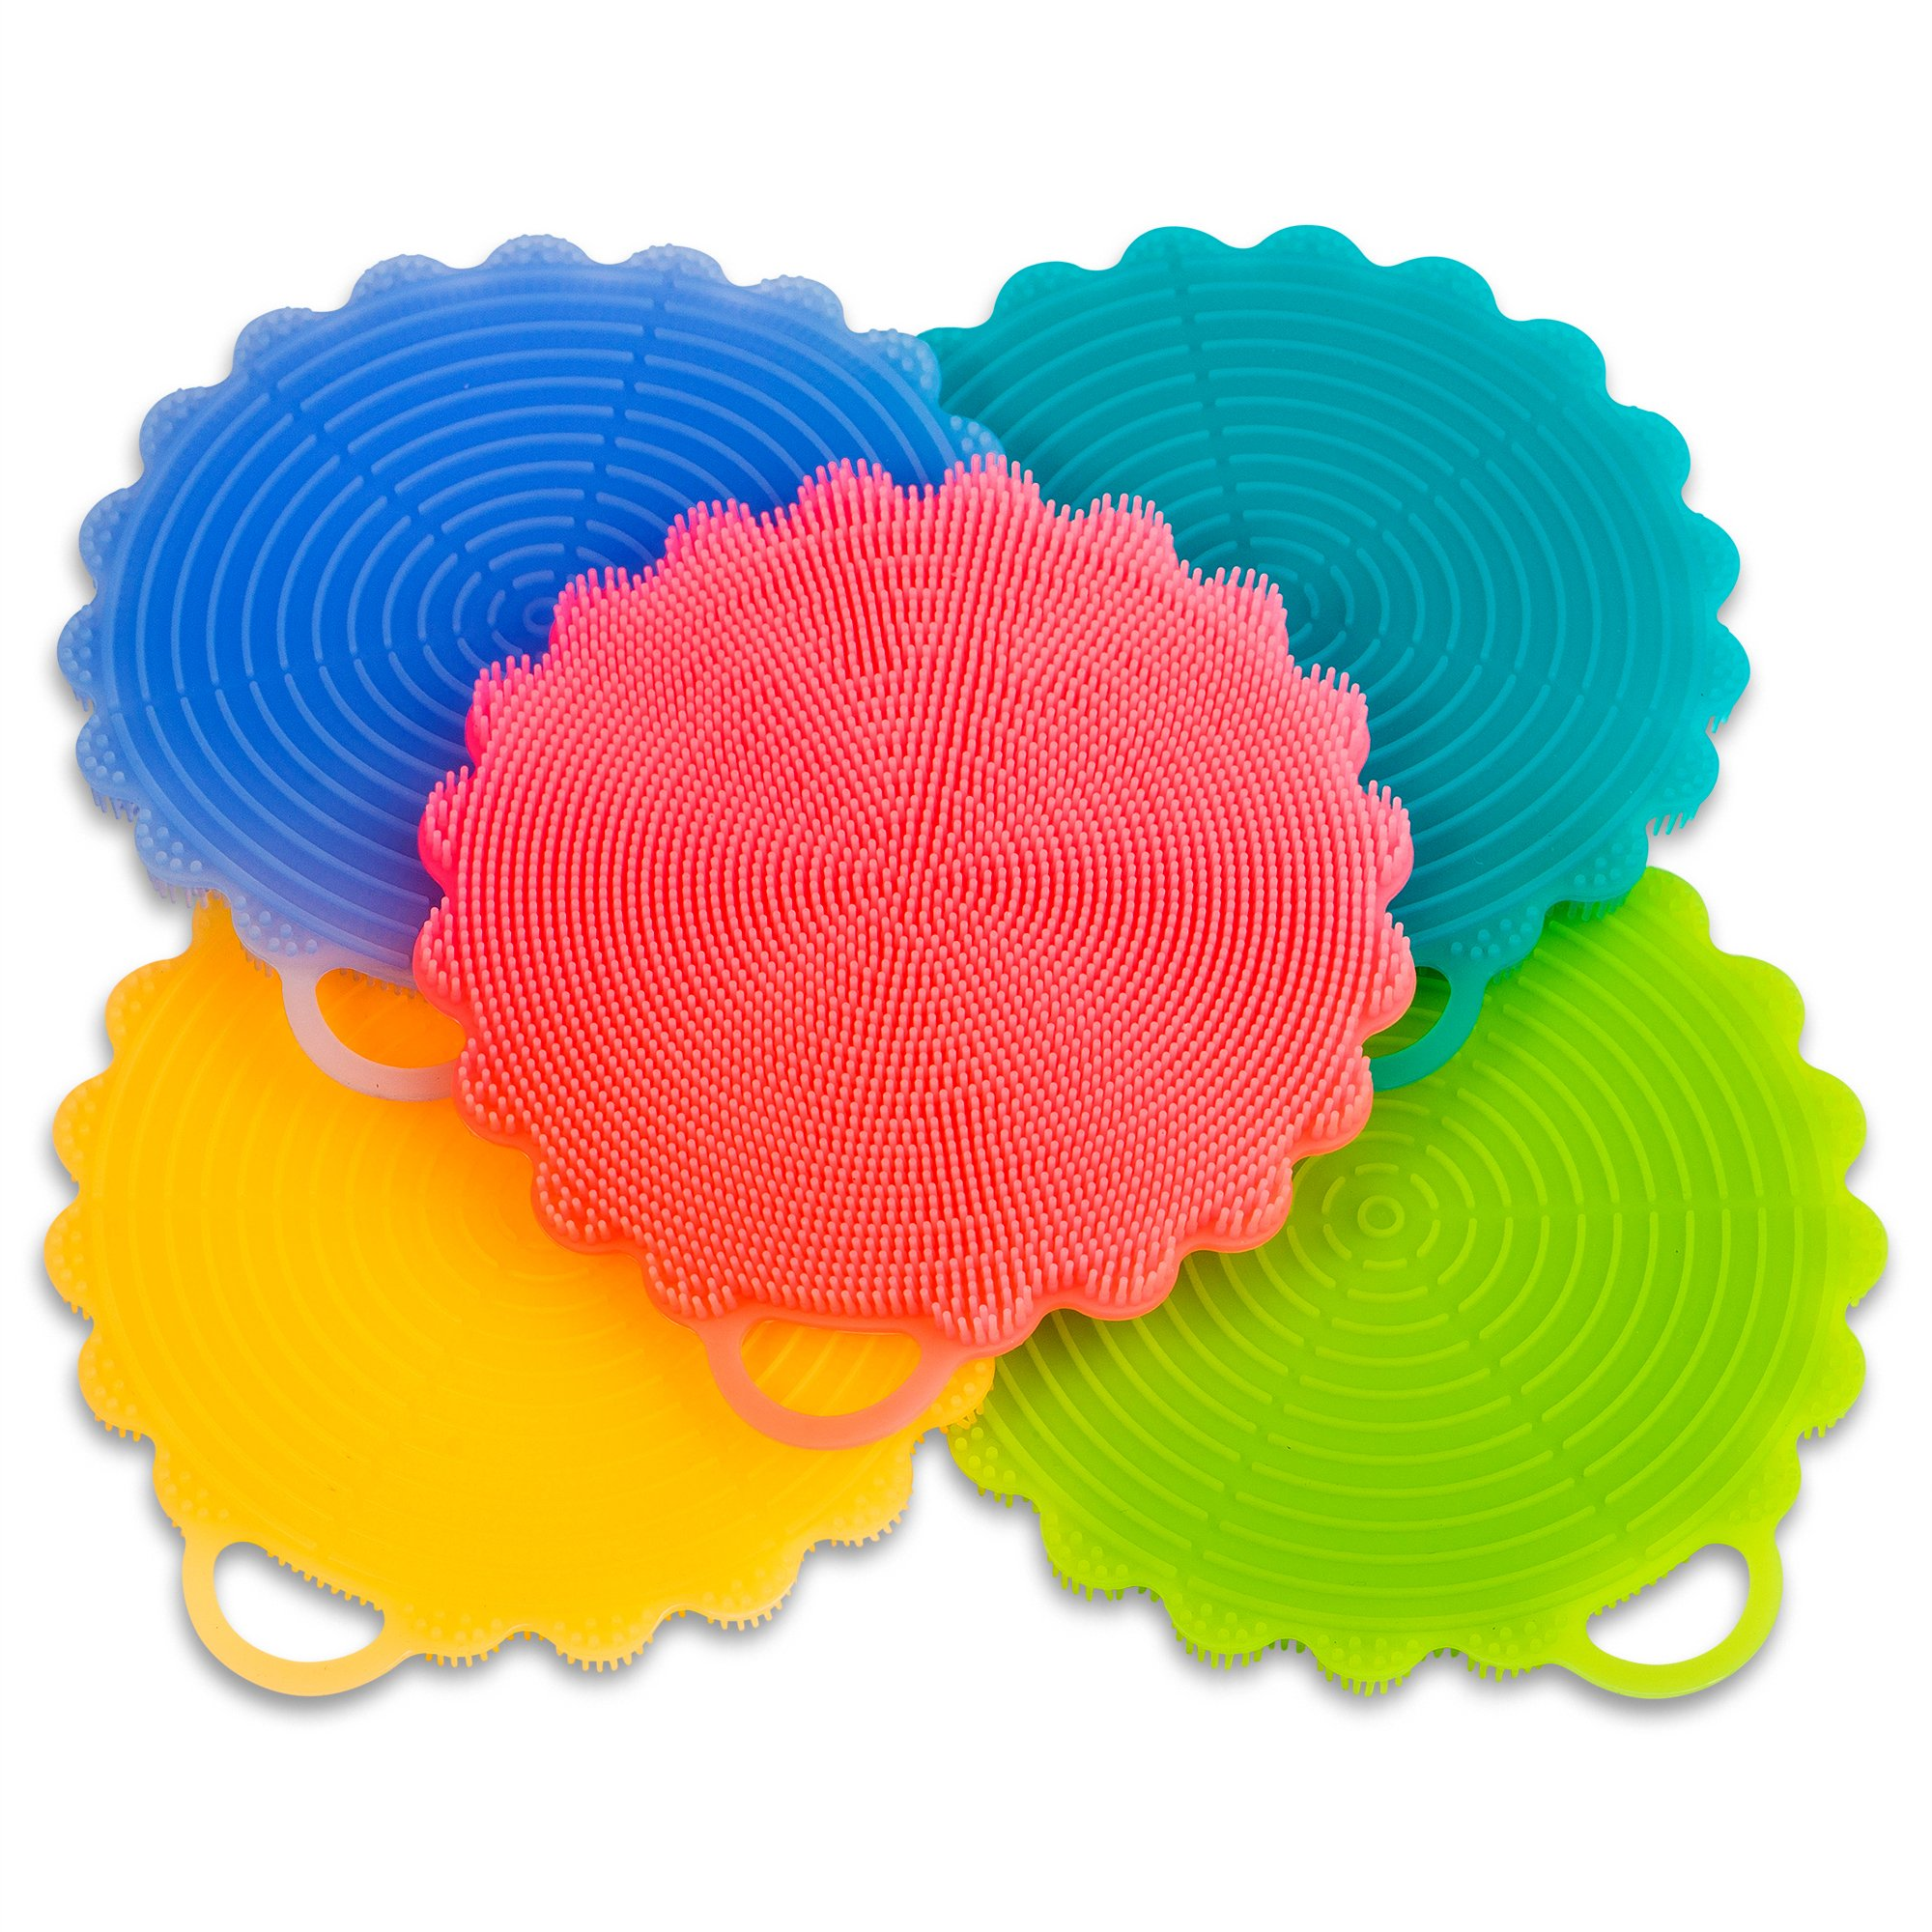 Silicone Dish Brush 5 pieces - Durable, Non Stick and Antibacterial Cleaning Kitchen Brush, Perfect for your Dish, Pot, Pan, Bowl, Fruit and Vegetable, Sanitary and Non-Abrasive Insulation Pad by JAGURDS